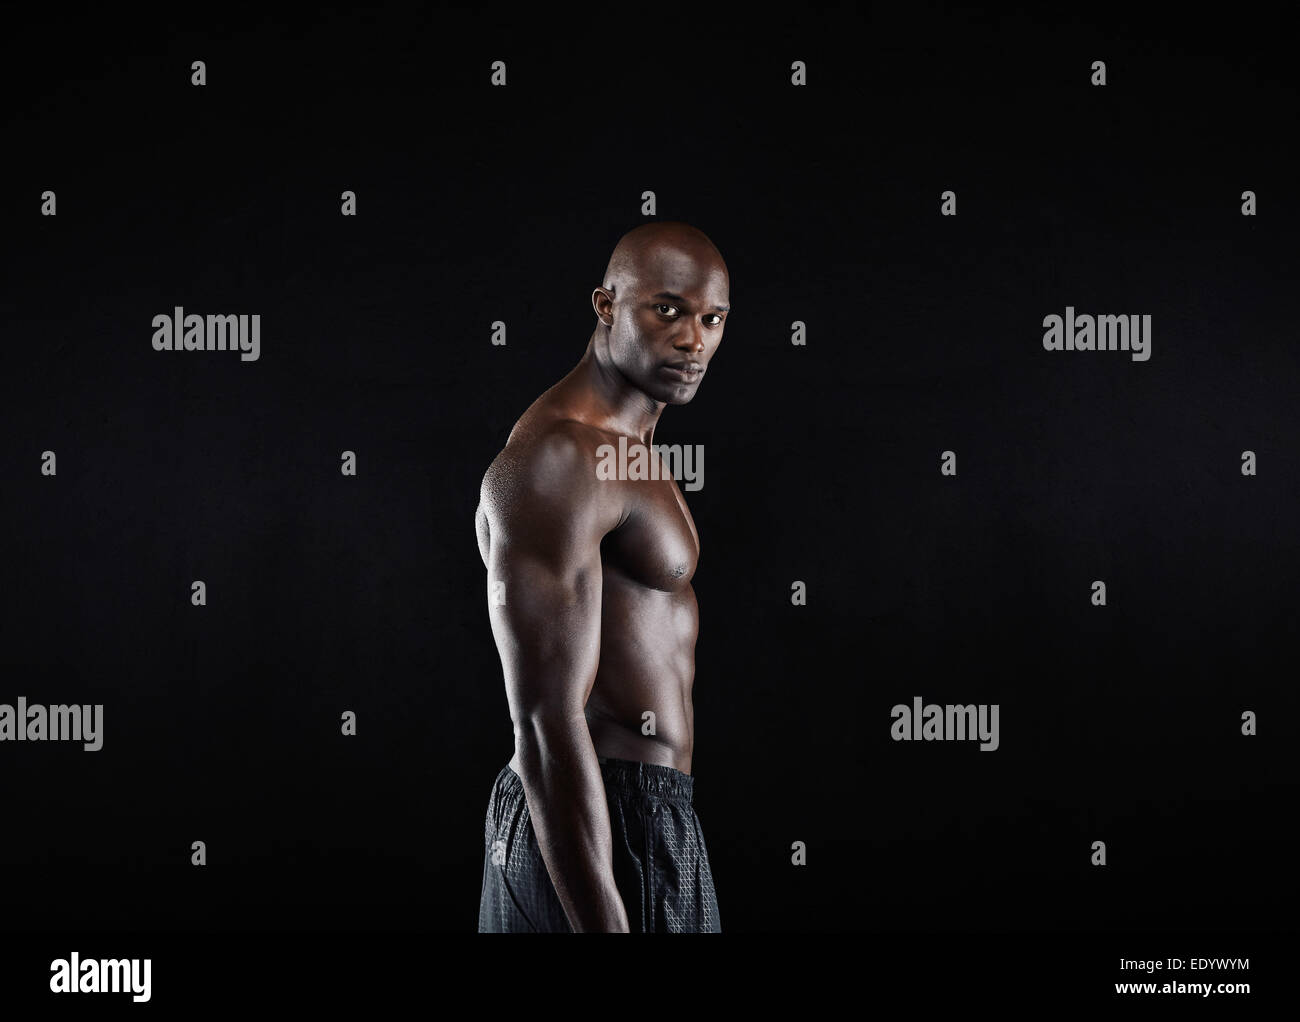 Portrait of masculine young African male model posing shirtless against black background - Stock Image